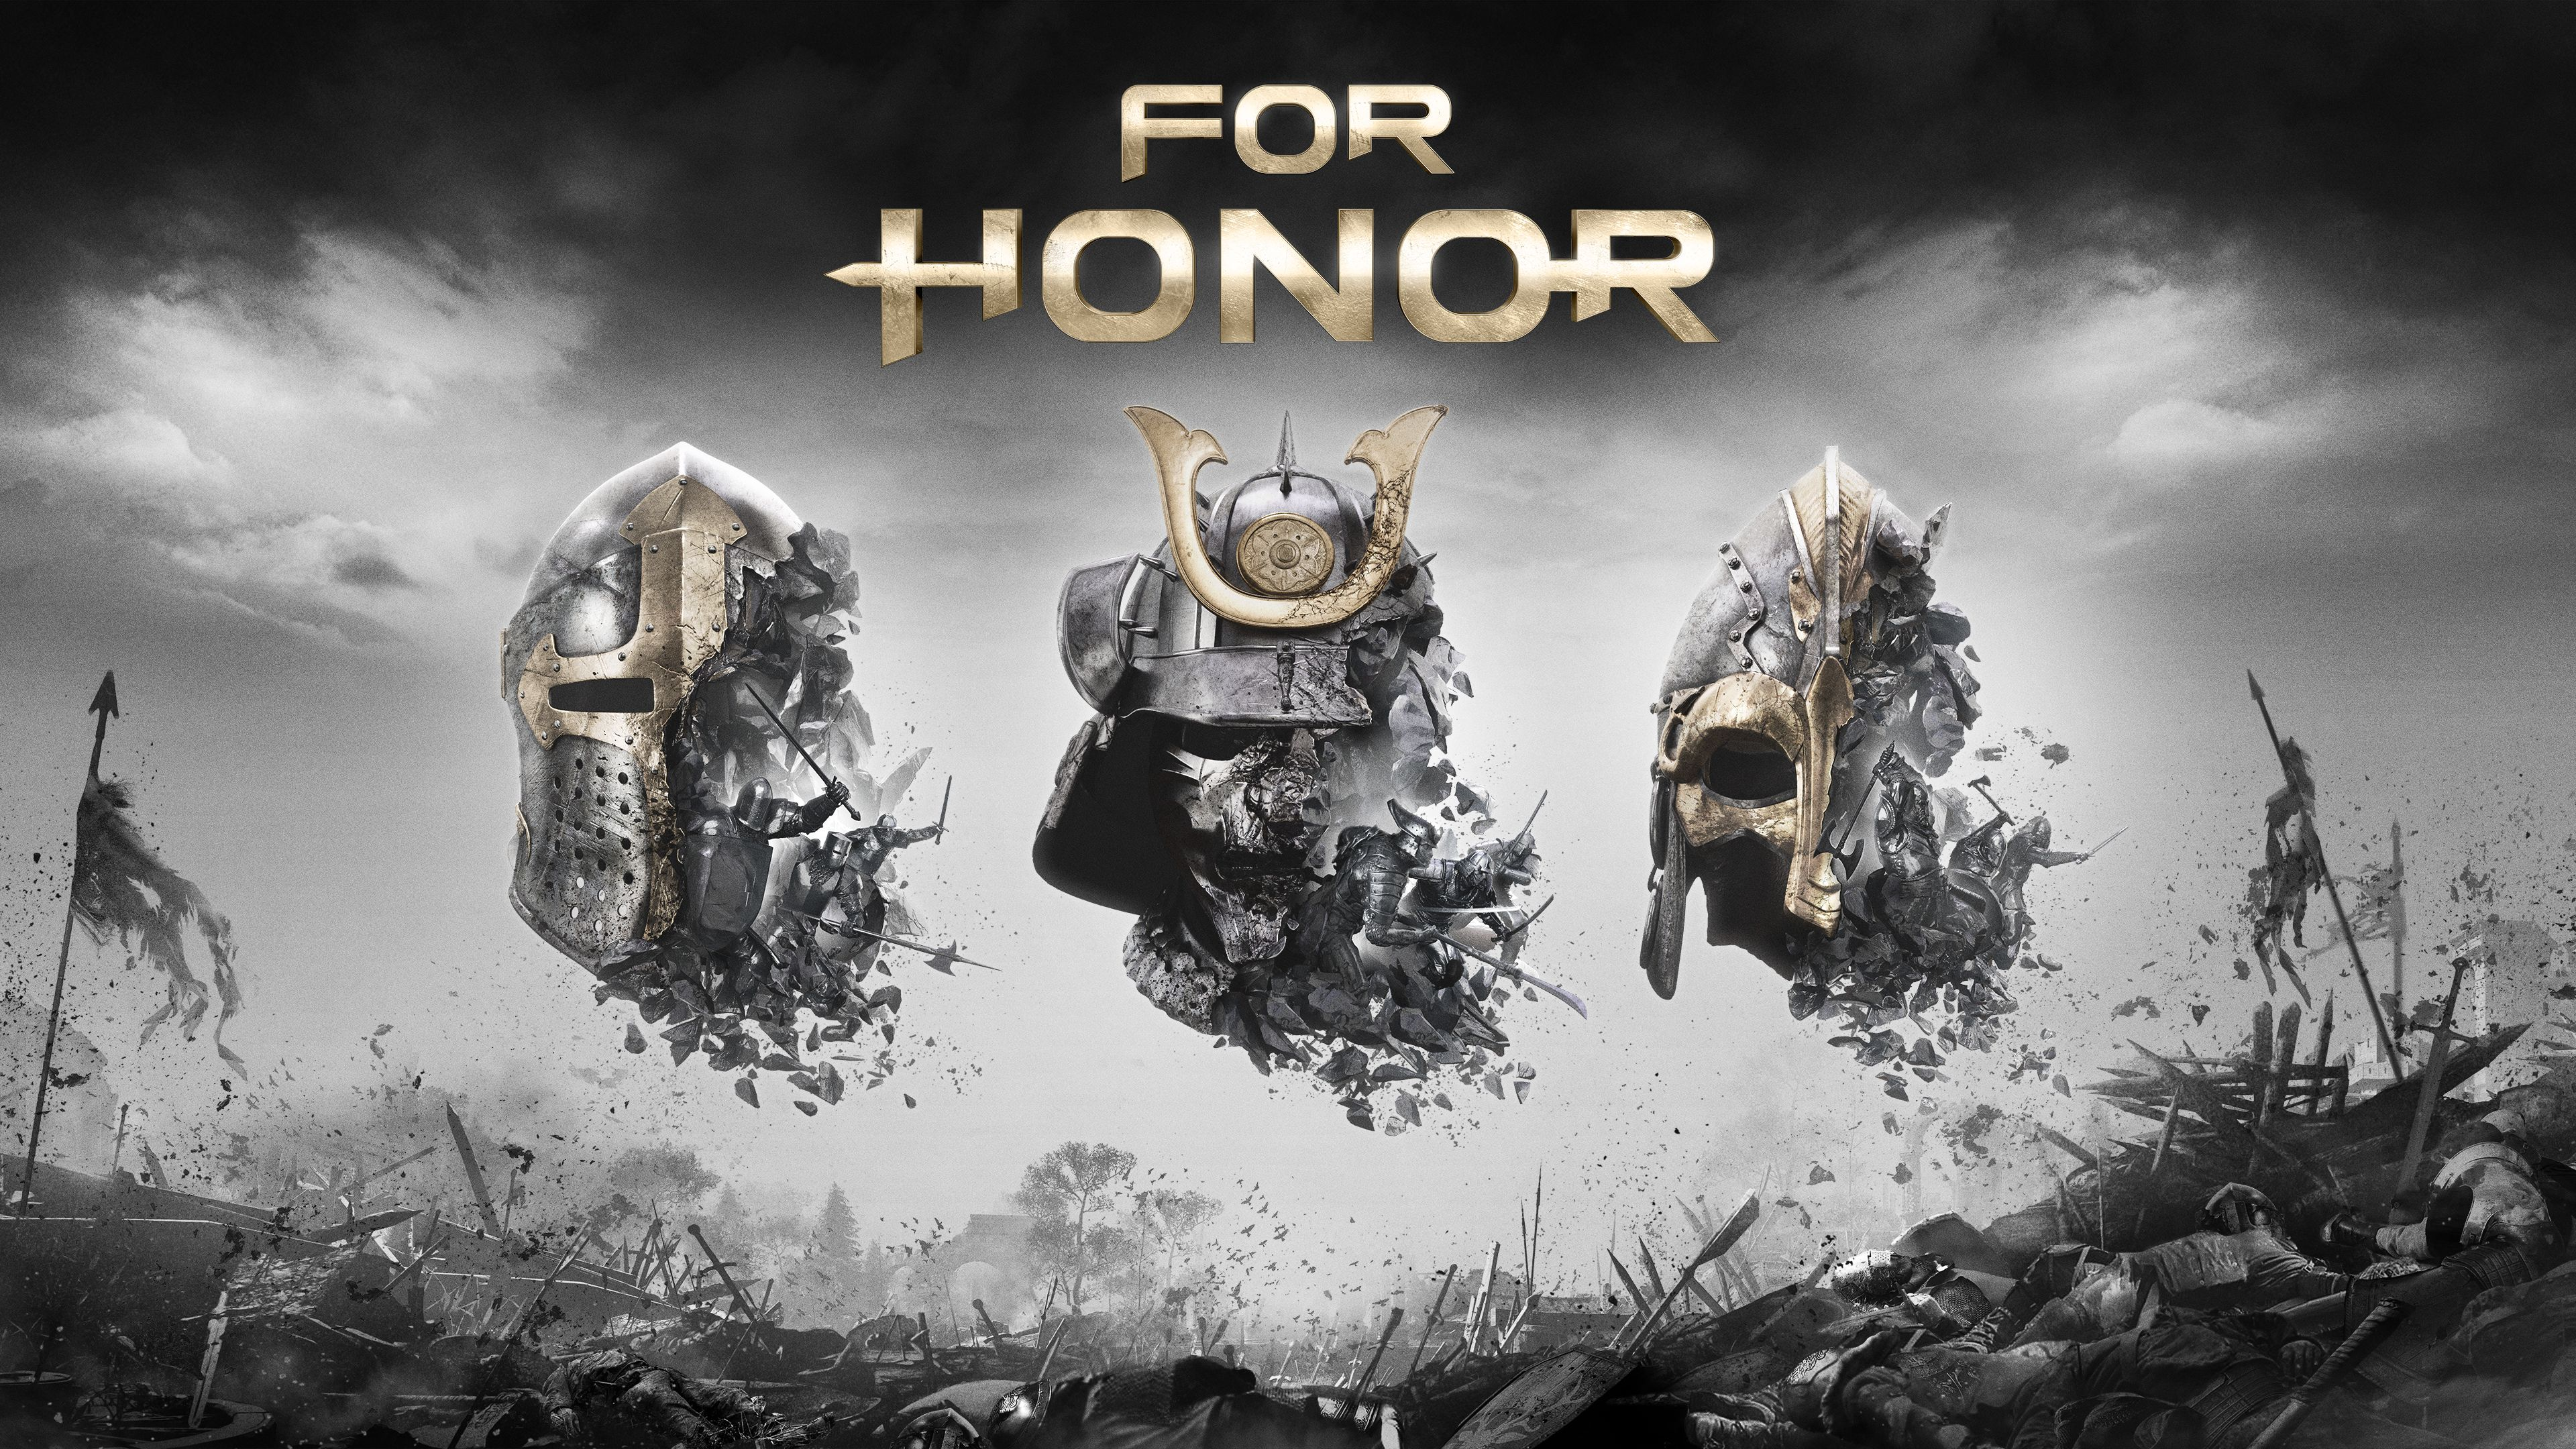 HD Wallpapers For Honor